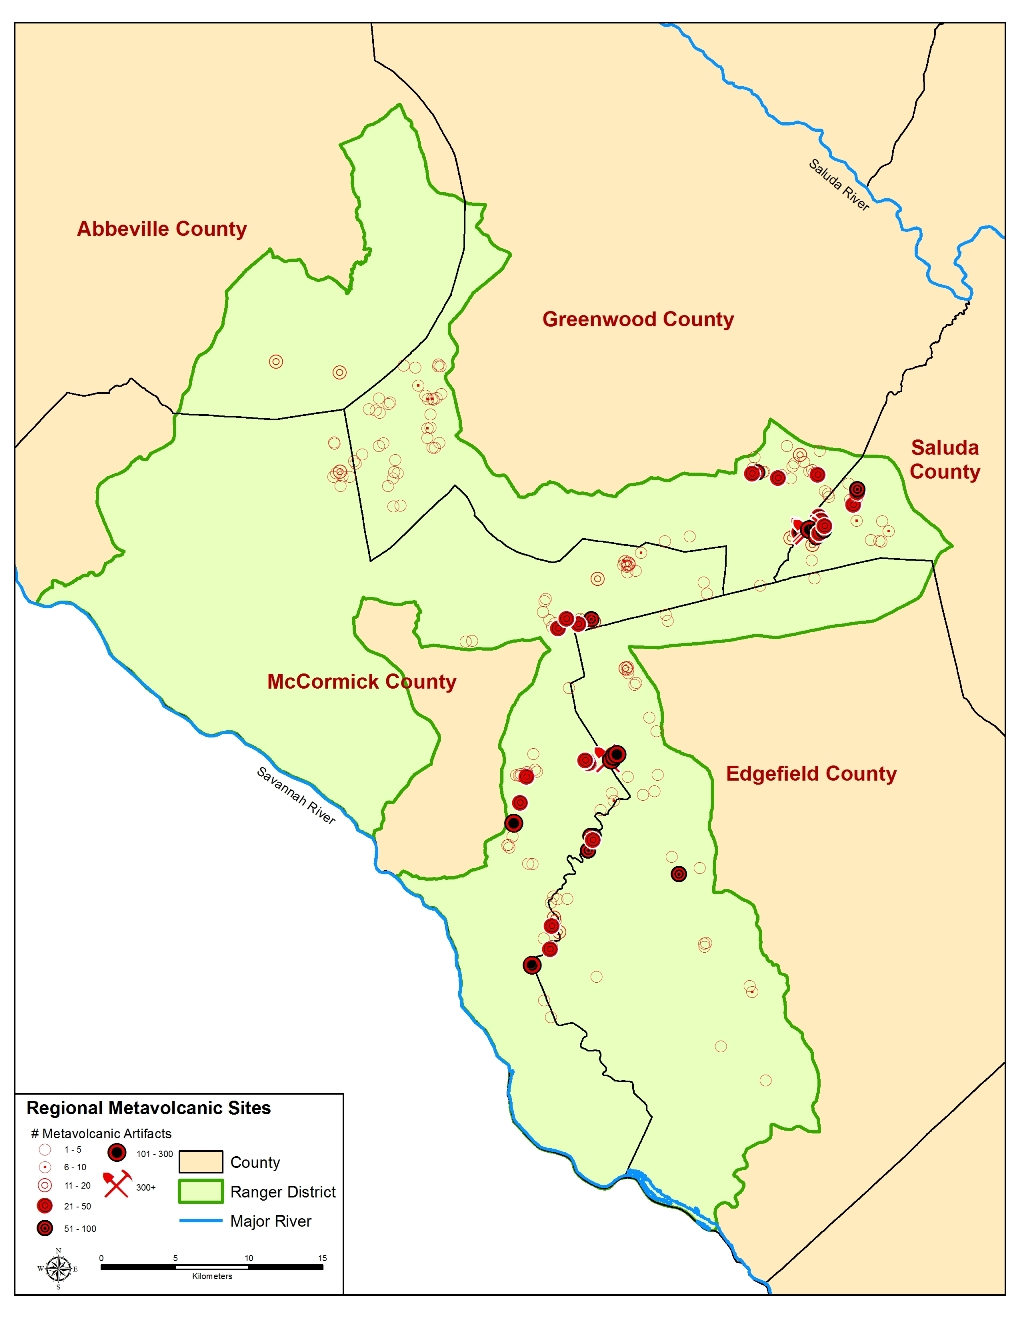 map of marion sc with Metavolcanic Artifact Distribution In The Long Cane Ranger District Of The Sumter National Forest on Cooper River  South Carolina as well South Carolina Florence County additionally Find Many Jobs State Lose 15 Minimum Wage further South Carolina  United States Genealogy furthermore Fmu To Spring 2015 Career Fair April 8.